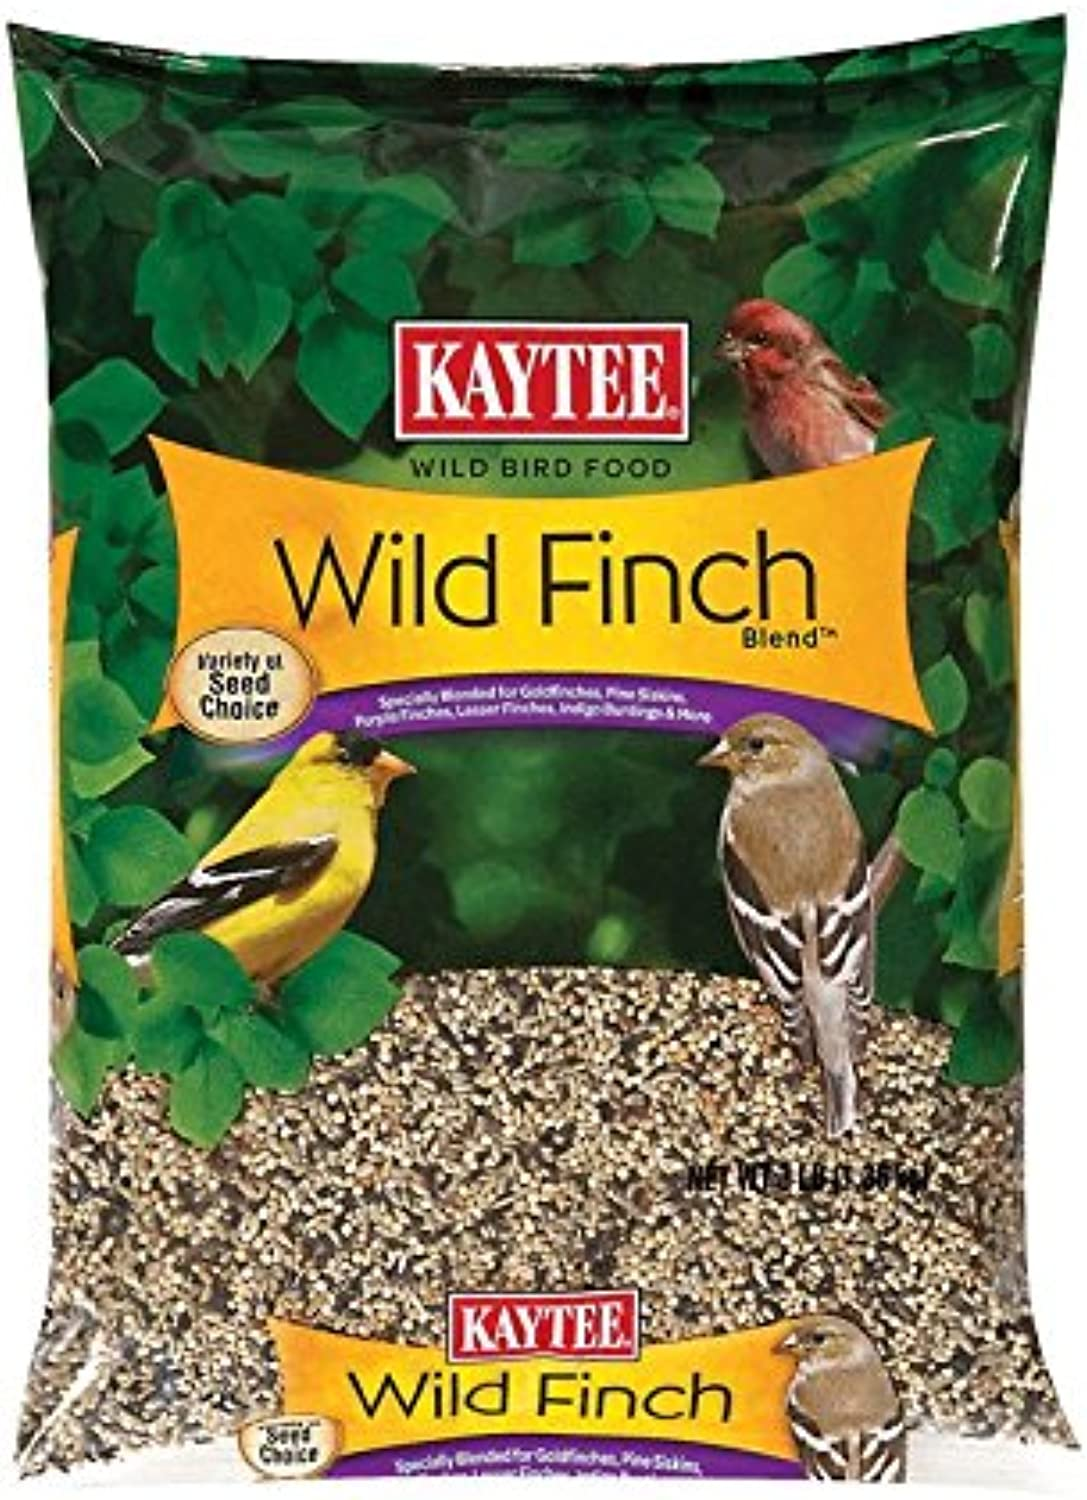 Kaytee Wild Finch Food Canary Grass Seed,Flax Seed,Red Millet,White Millet,Yellow Millet 3 Lbs.